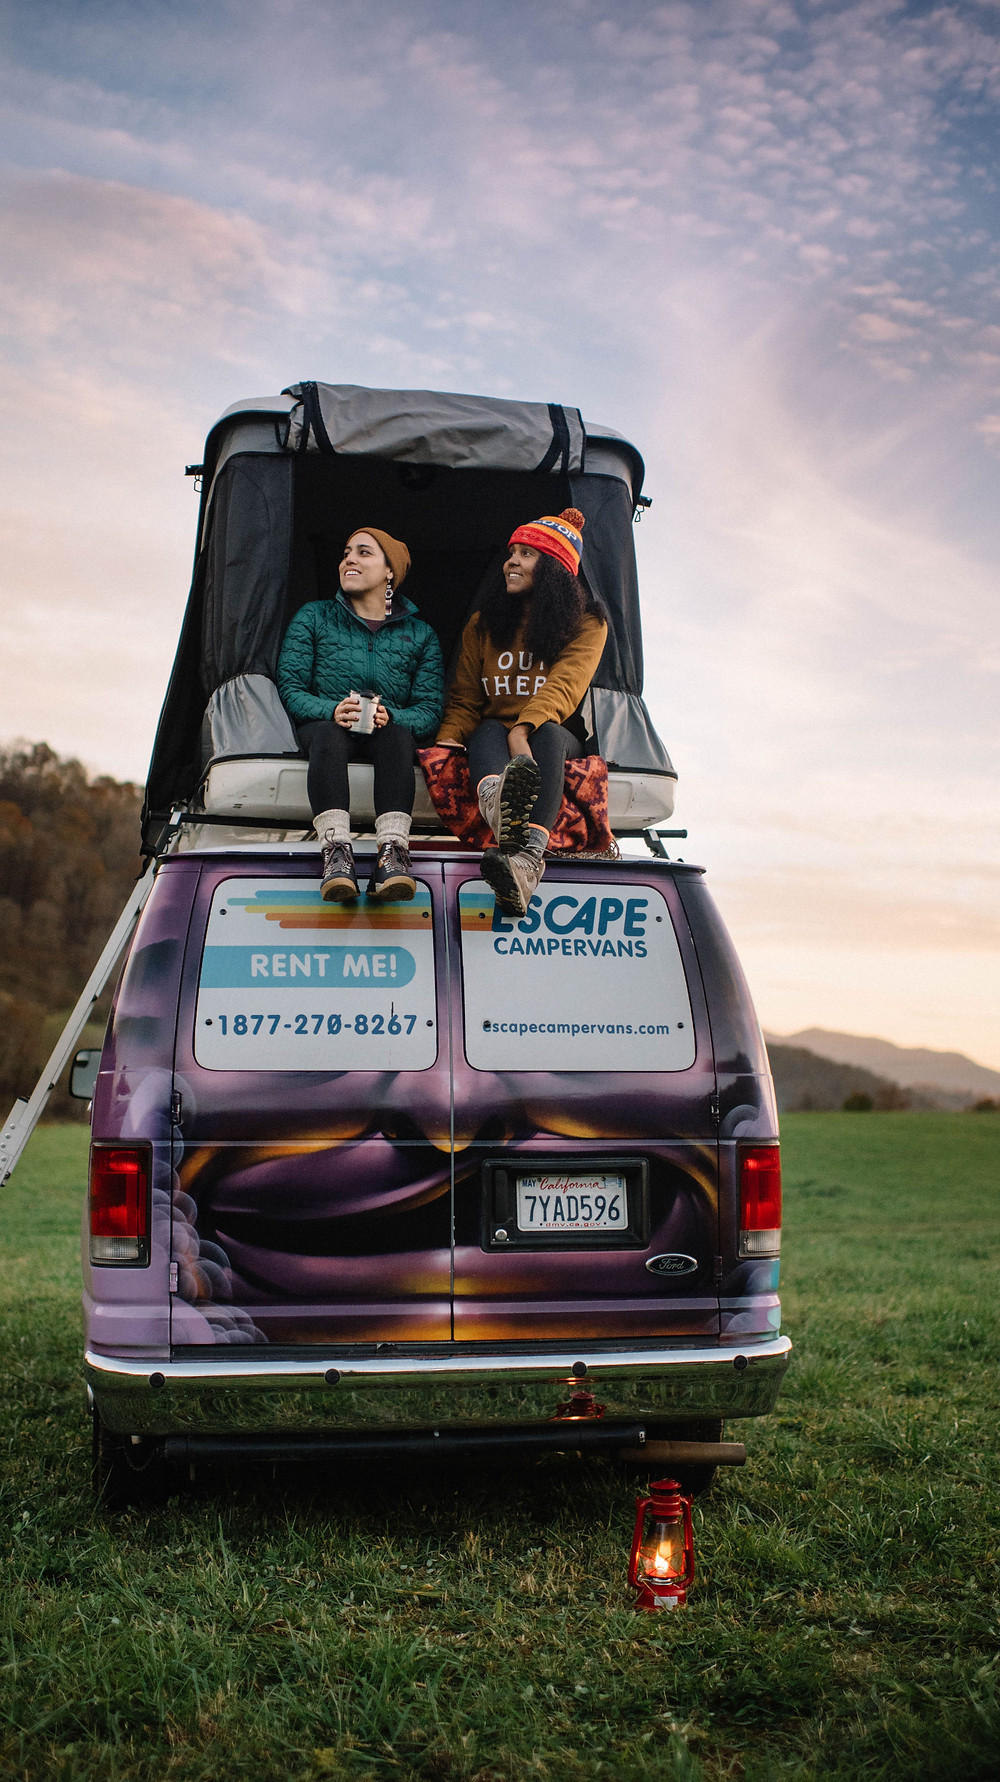 Adriana & Cherisa sitting atop the Campervan at the Far Flung Farm in Canton, NC